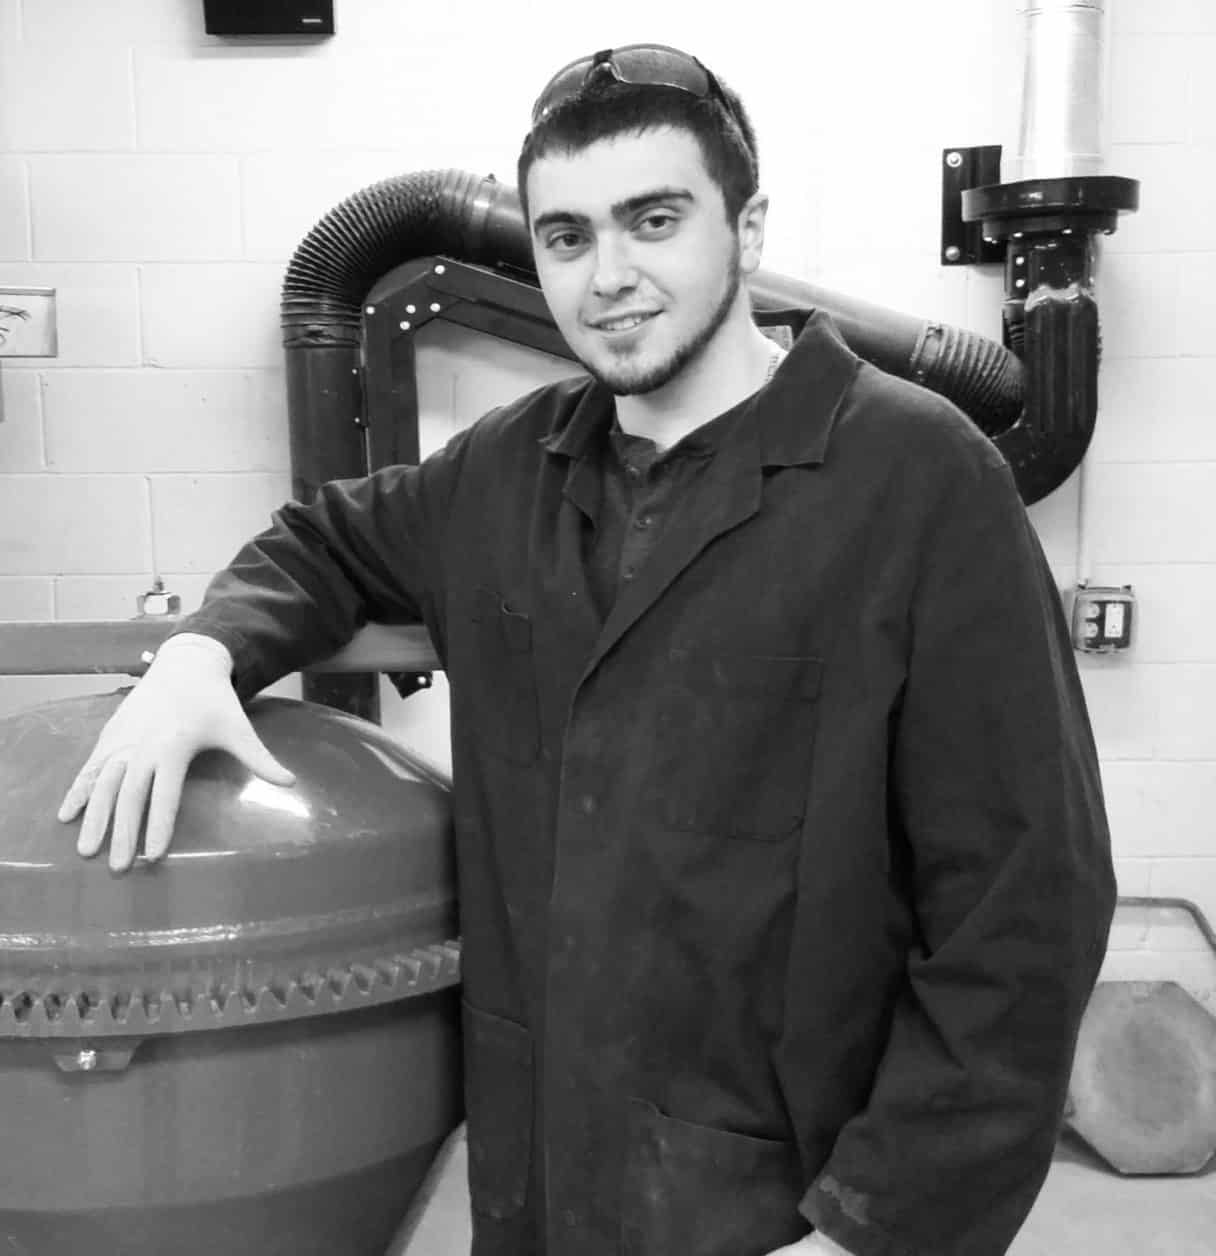 Male student, Dustin, posing, standing, smiling